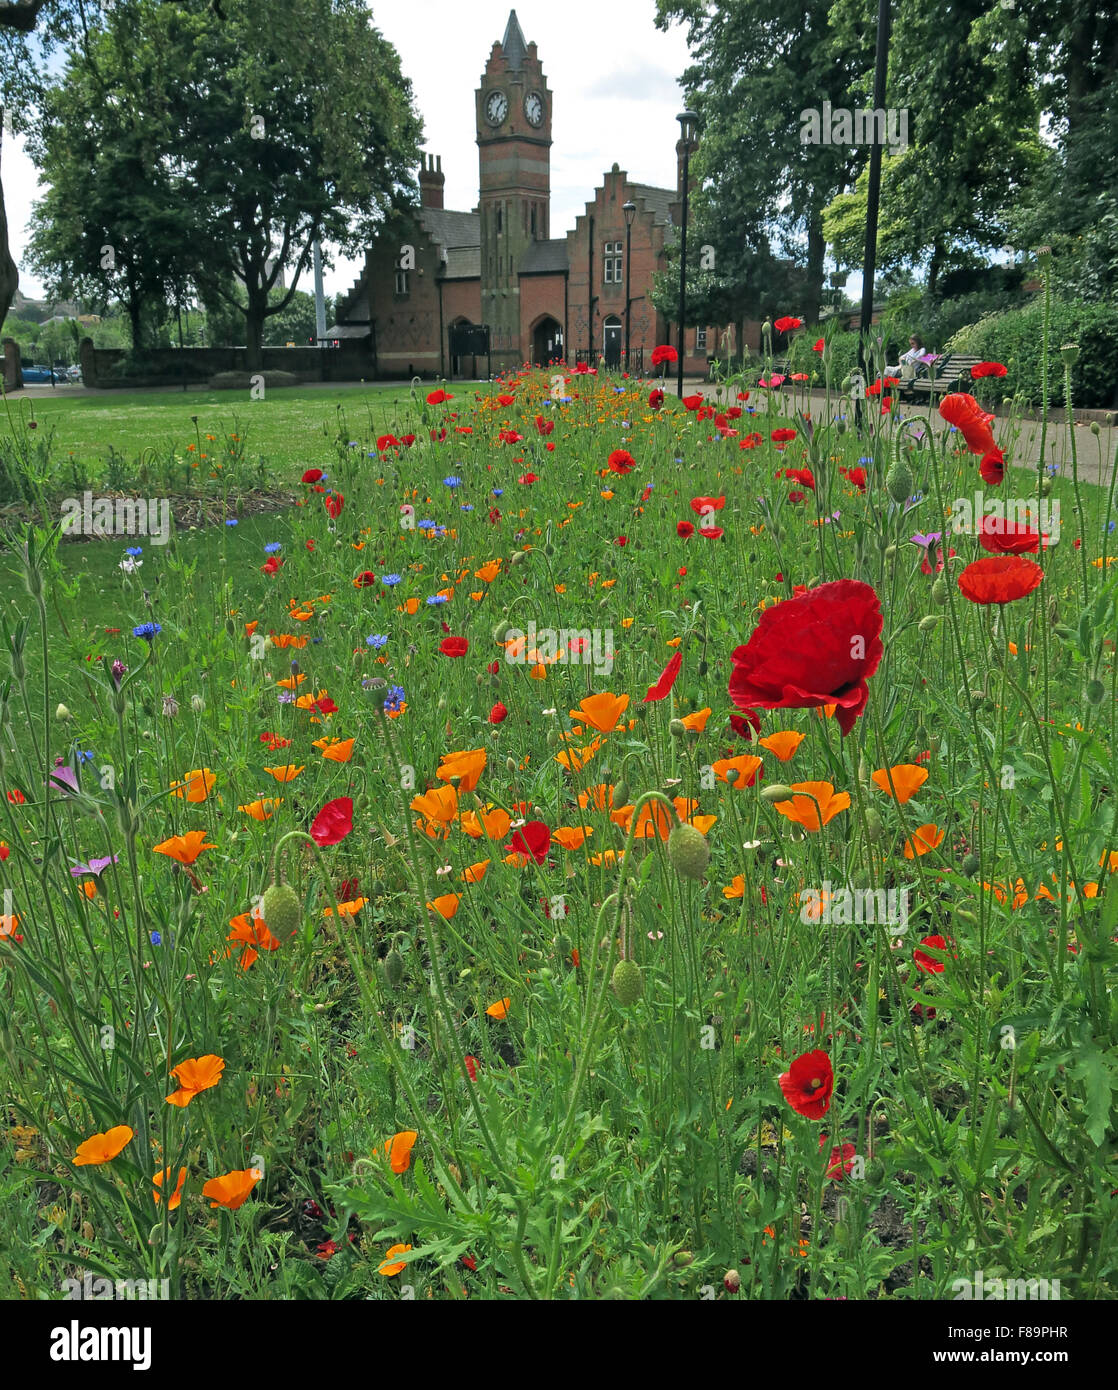 Welcome,to,English,Tree,Trees,collection,wild,flowers,public,space,Arbo,GB,UK,United,Kingdom,saddlers,sadler,MBC,Borough,Council,Victorian,park,park,entrance,clock,tower,lake,sign,flower,bed,town,Walsall Arboretum,West Midlands,Public spaces,Victoria Park,flower bed,GoTonySmith,West,Midlands,England,WS4,2BU,tourist,tourism,travel,to,Black,Country,Buy Pictures of,Buy Images Of,Lichfield St,WS4 2BU,Black Country,Walsall Black Country